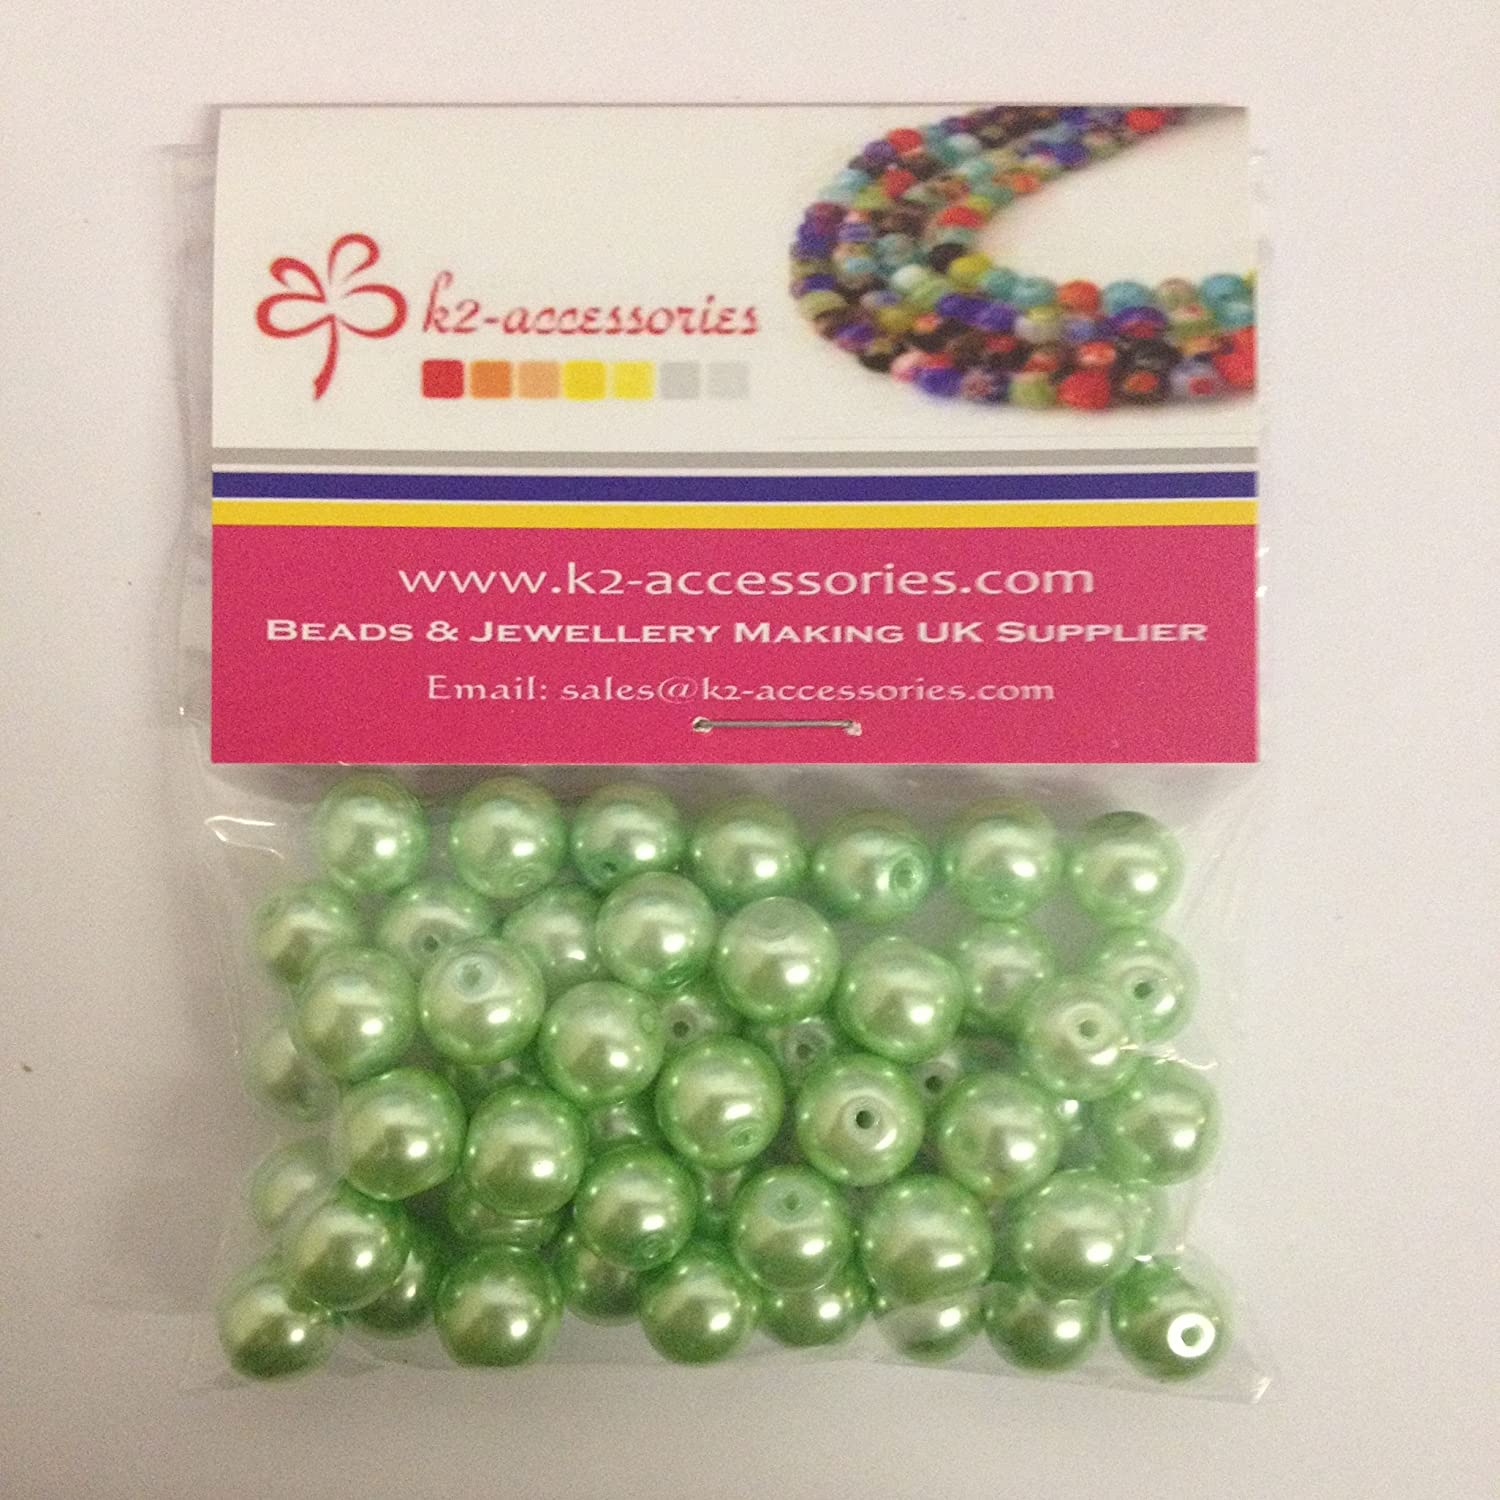 50 pieces 10mm Glass Pearl Beads - Pale Green - A1213 k2-accessories